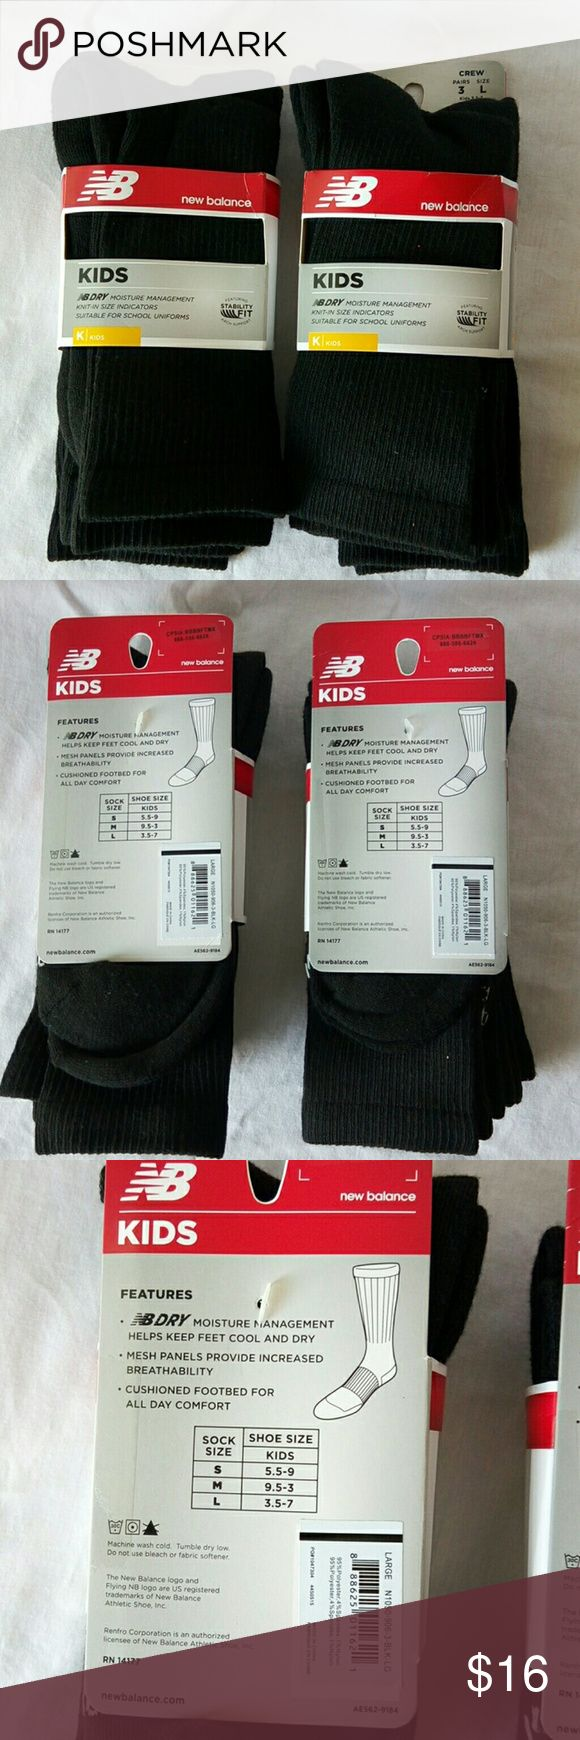 New Balance Kids Boy's Socks New 2pack of new balance black sick. Each pack has 3pairs size large (fit shoe size:3.5-7) moisture management helps keep feet cool and dry. Mesh panels provide increased breathability. Cushioned footbed for all day comfort. Featuring Arch support. New Balance Other